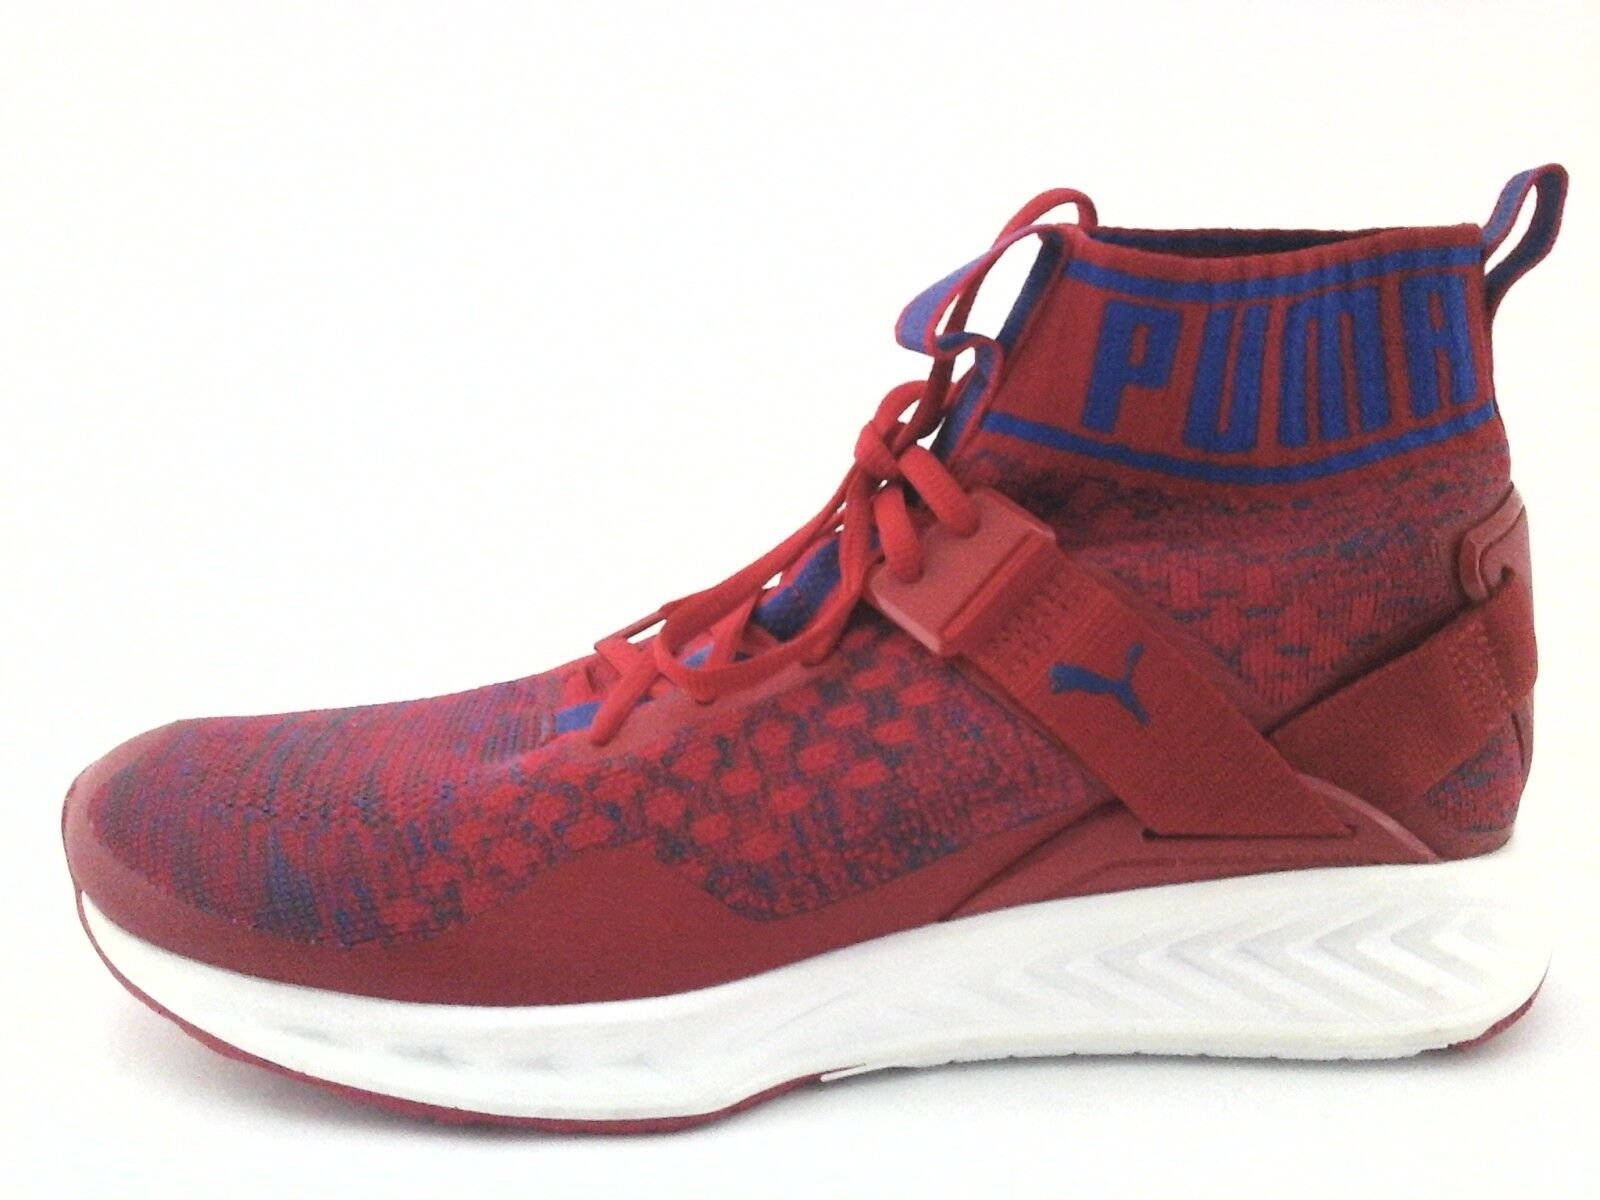 PUMA Shoes Ignite EVO KNIT SNEAKERS High Top Red/Blue Men's US 10.5 Price reduction